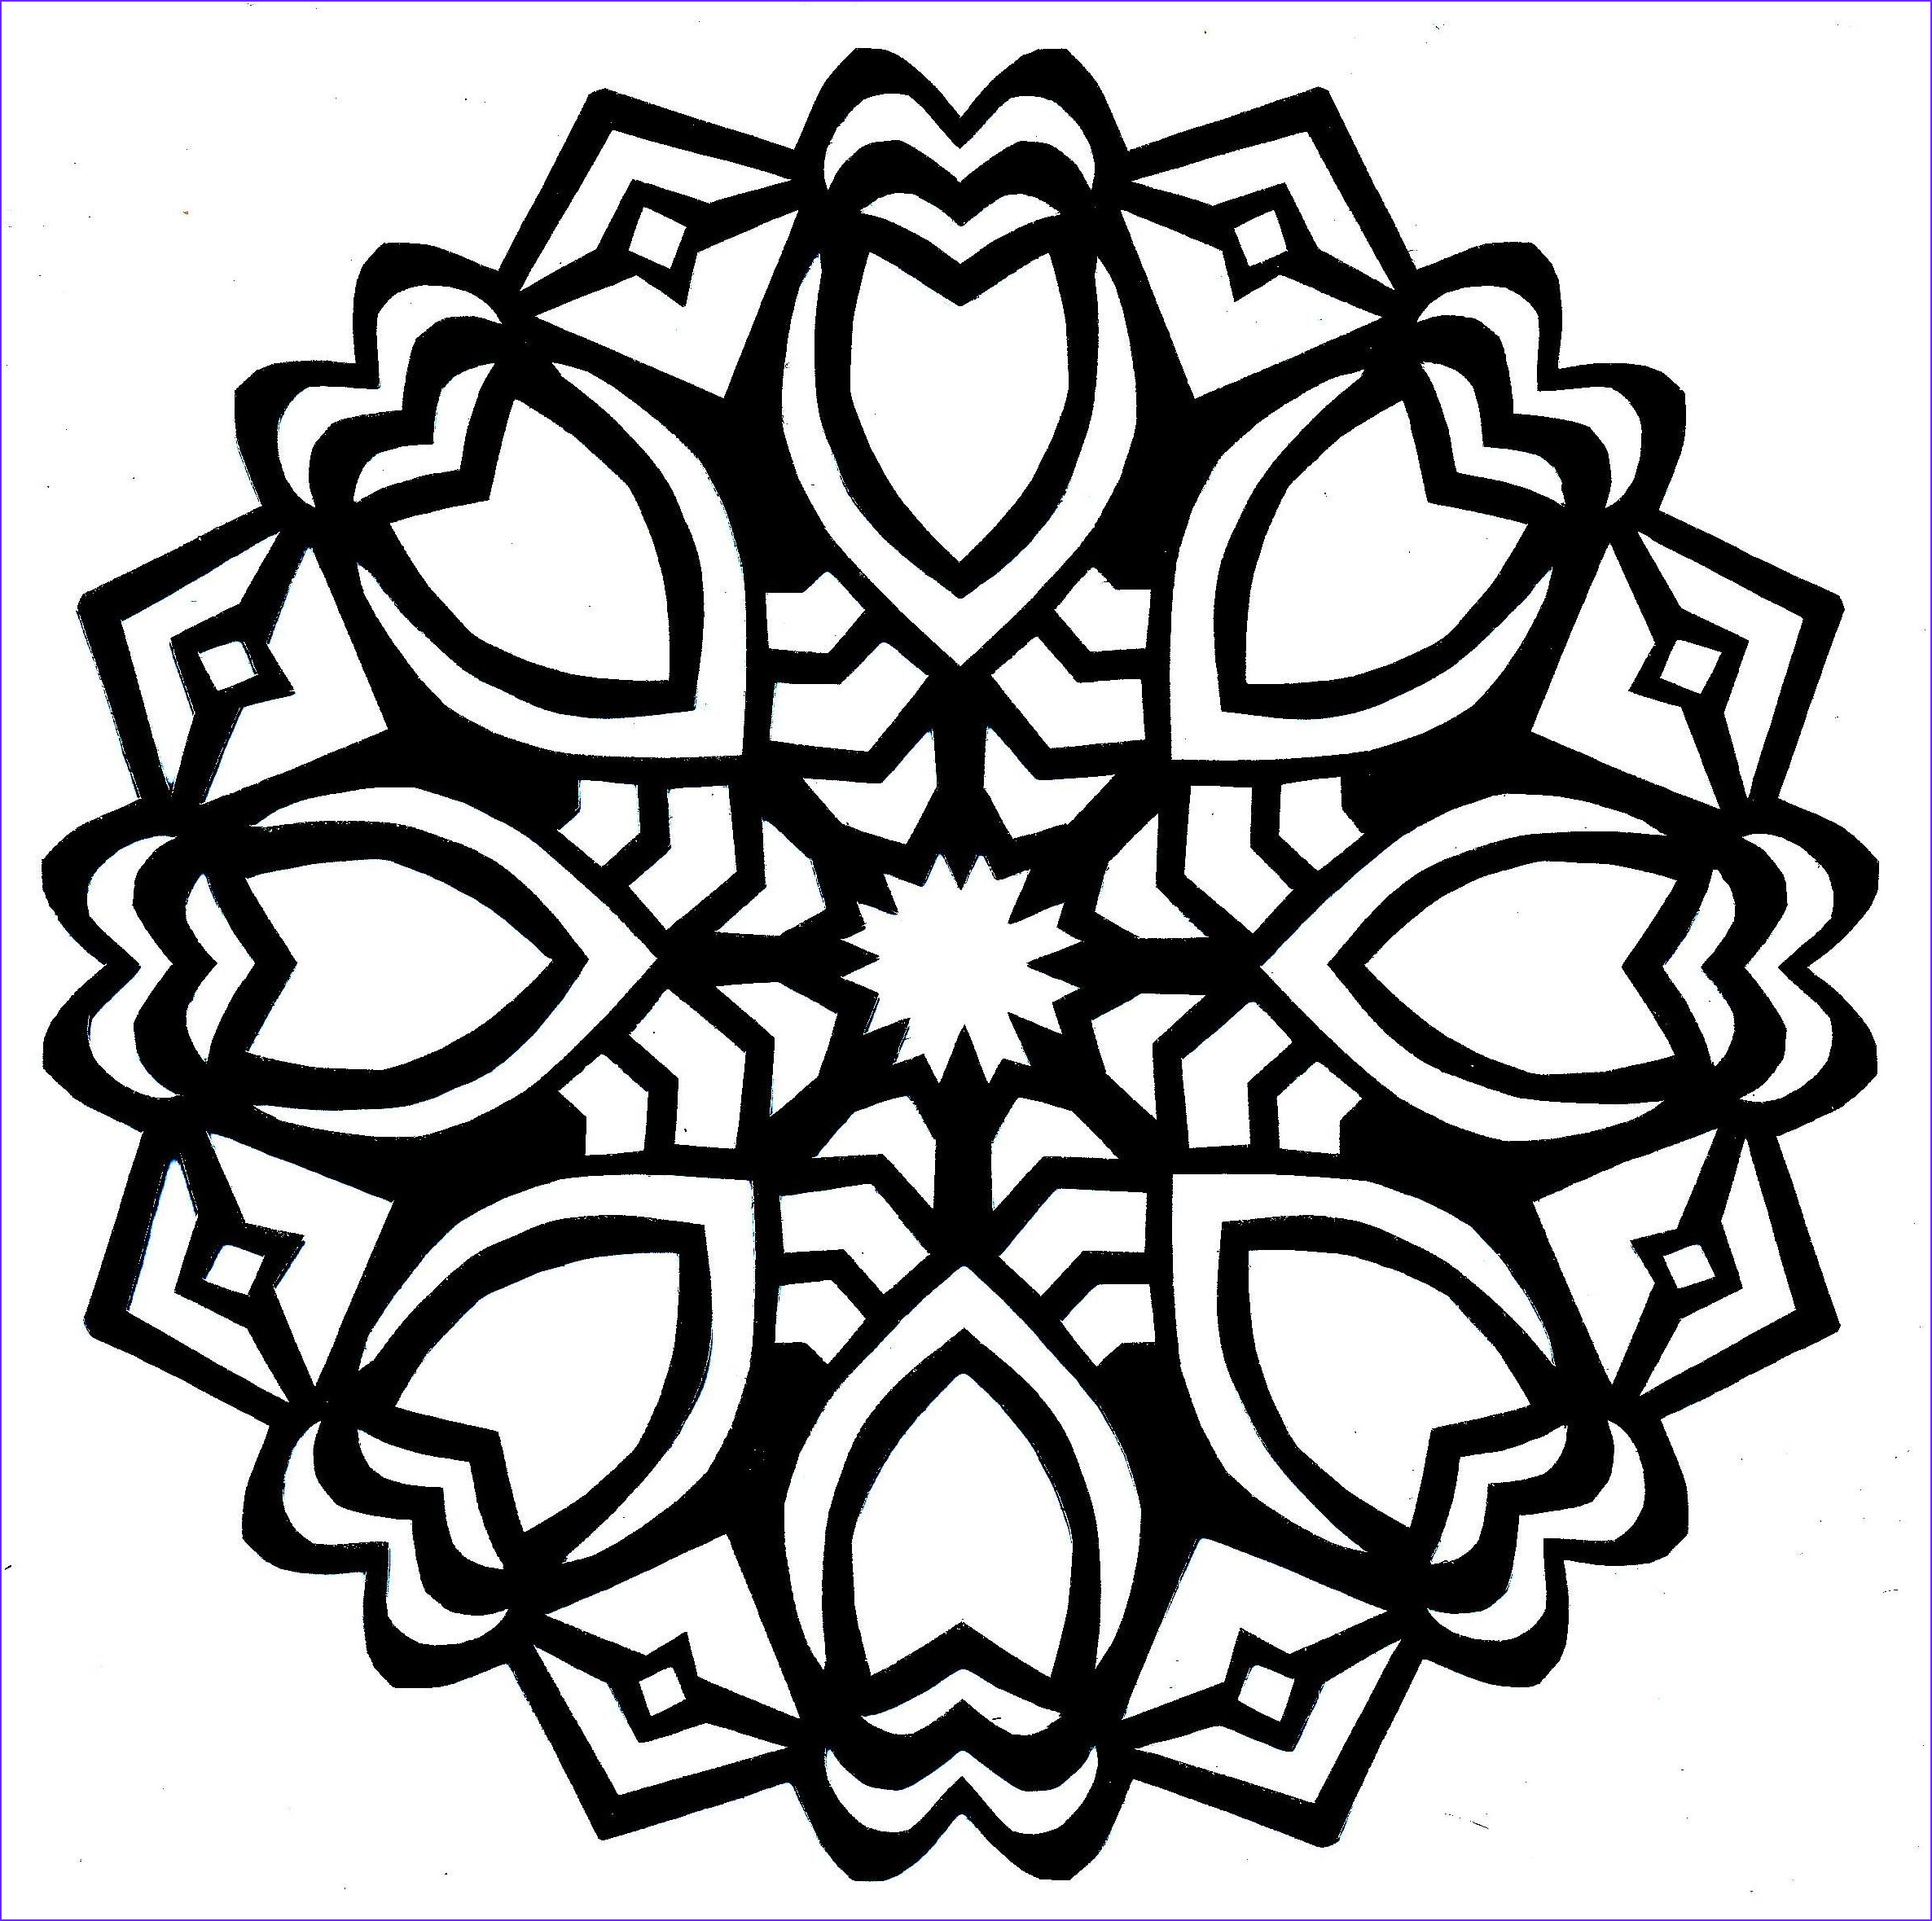 Easy Adult Coloring Pages Unique Images Simple Mandala Coloring Pages Google Search